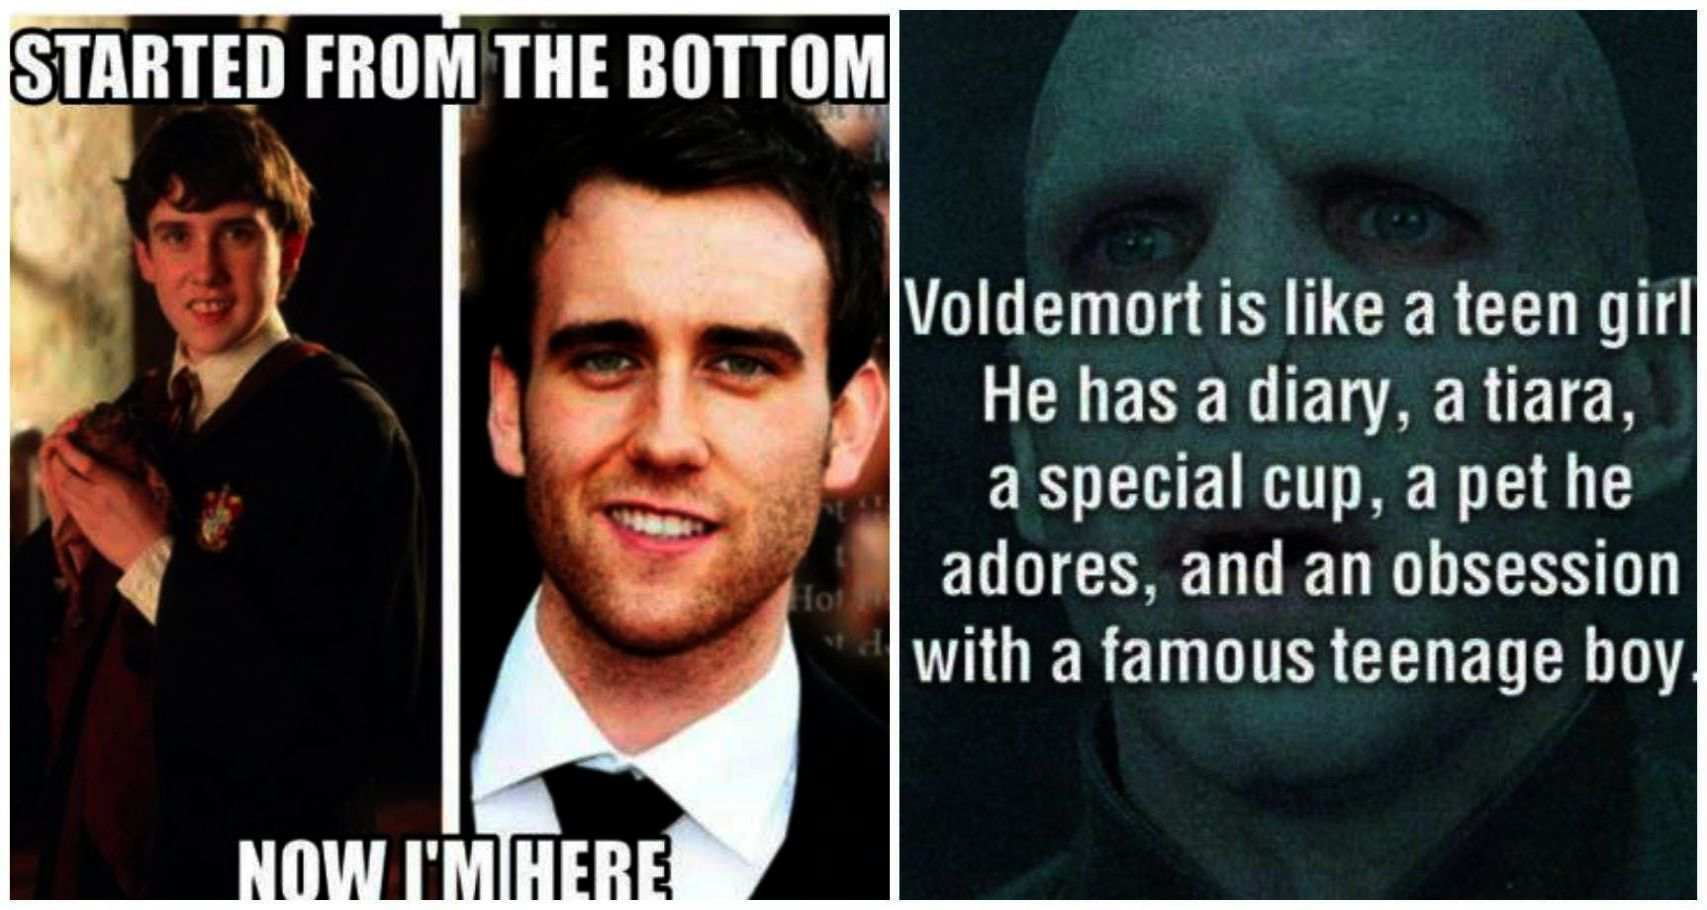 Harry Potter Theme Song Against Harry Potter Cast Deaths If Harry Potter World Discount Ticket Harry Potter Characters Harry Potter Memes Harry Potter Broadway